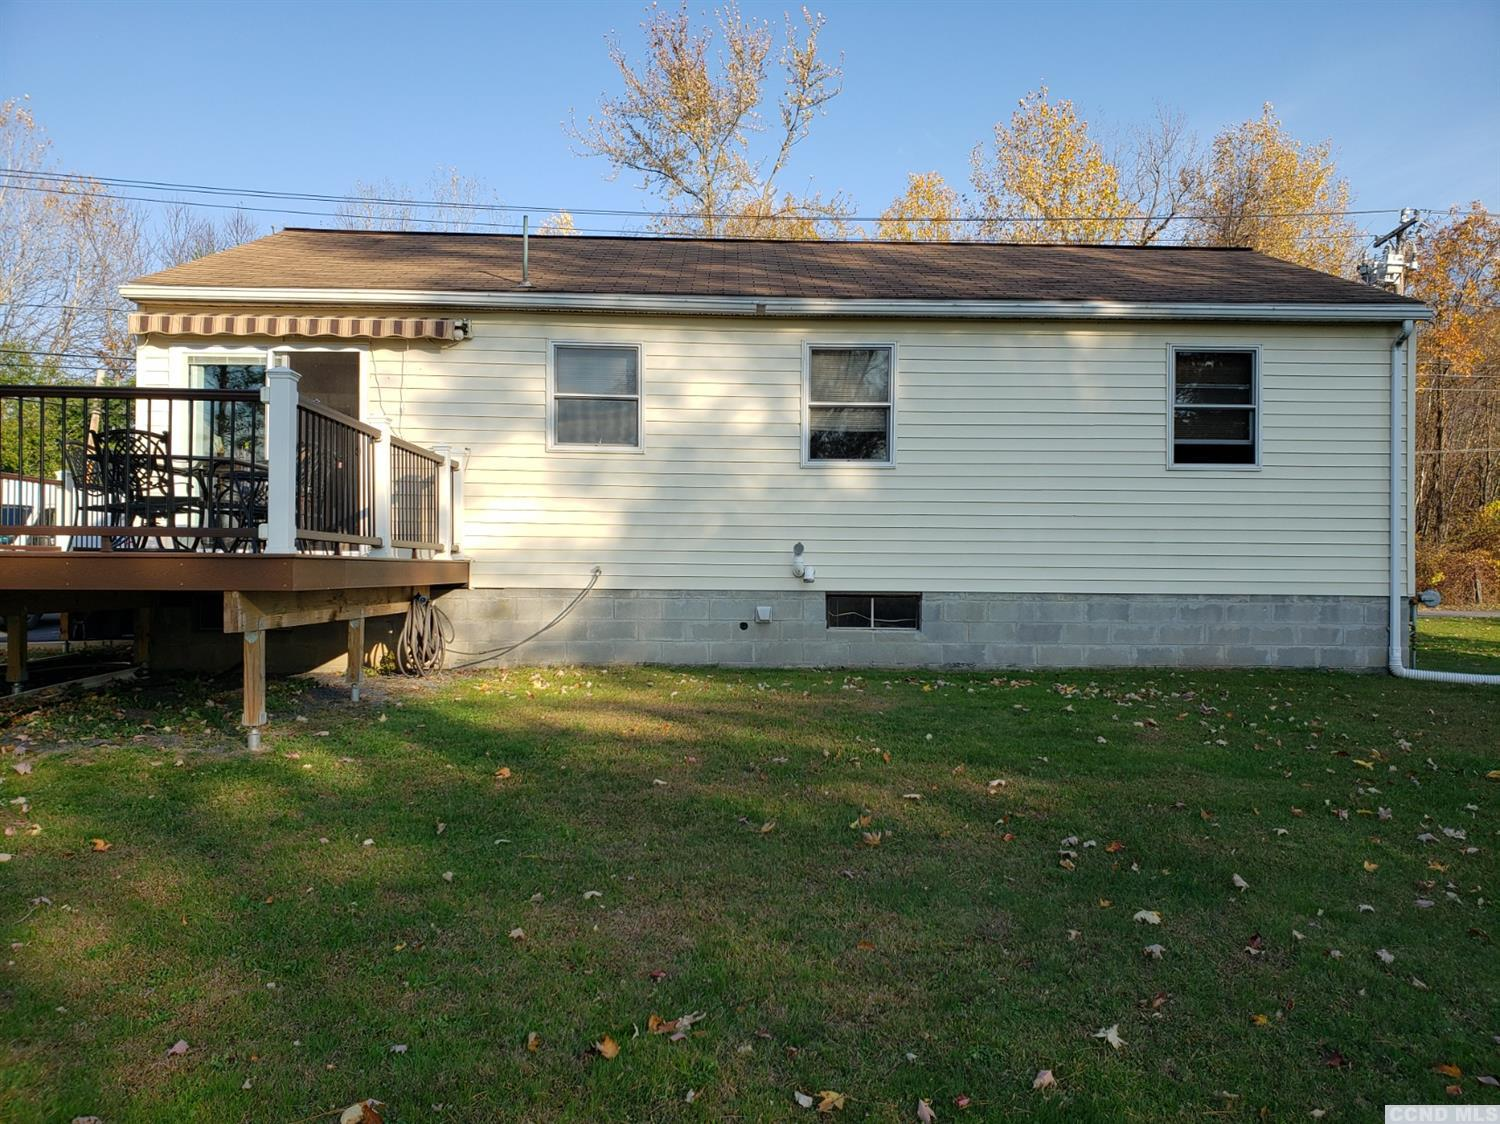 For Sale: 25 Old Ravena Road, Selkirk, NY 12158 | 3 Beds ...